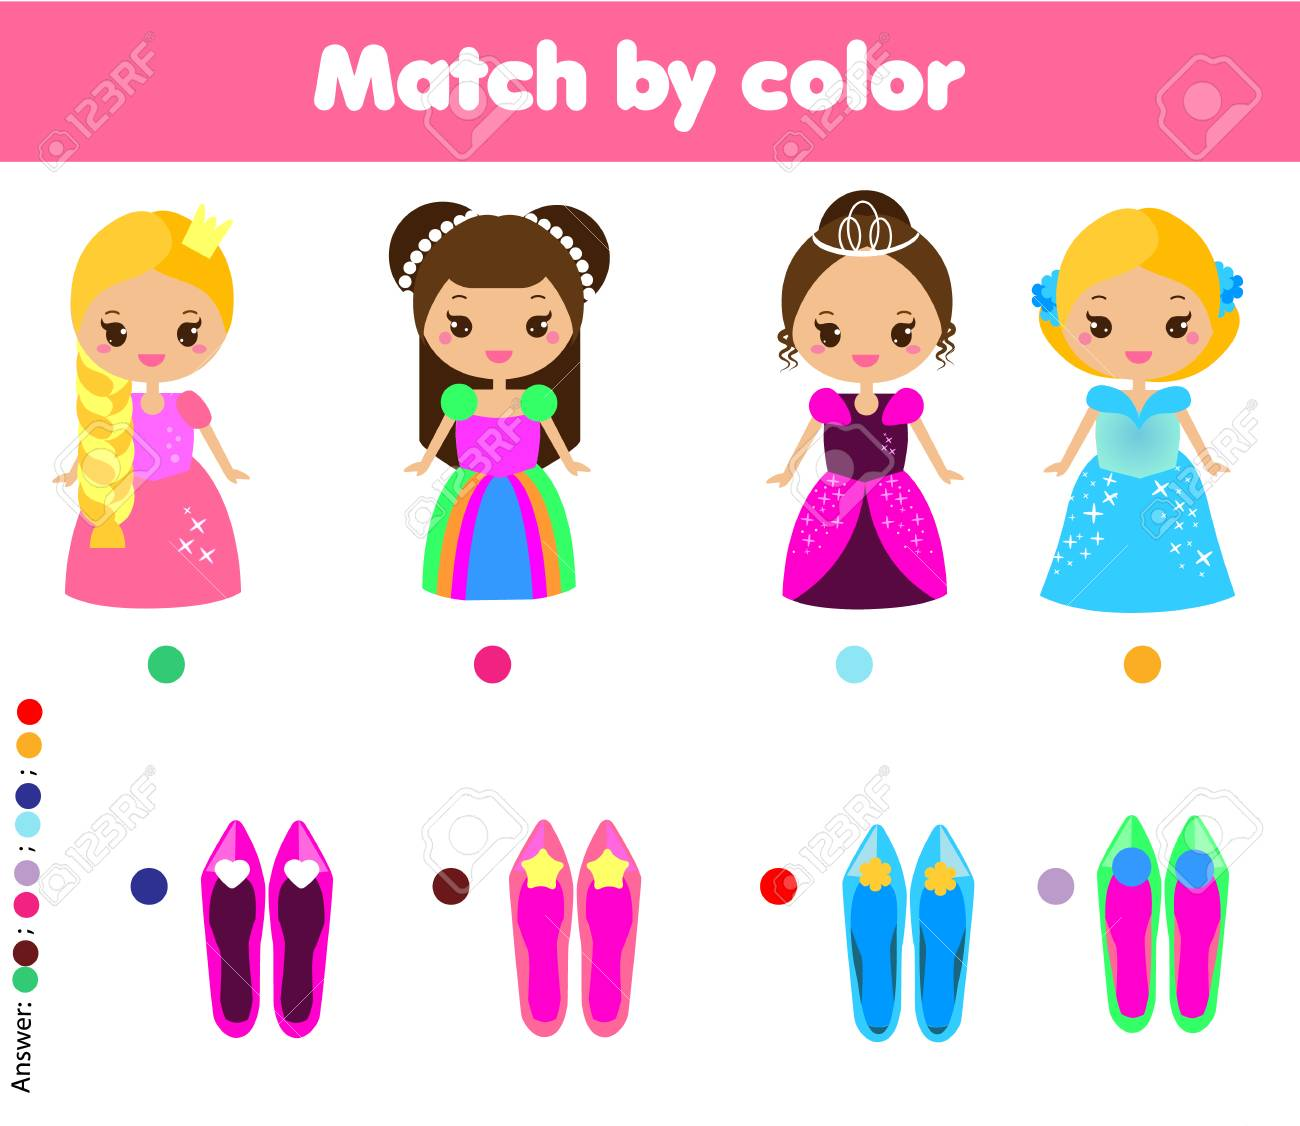 Matching children educational game. Match by color. Activity for pre shool years kids and toddlers. help princess find shoes - 88074812